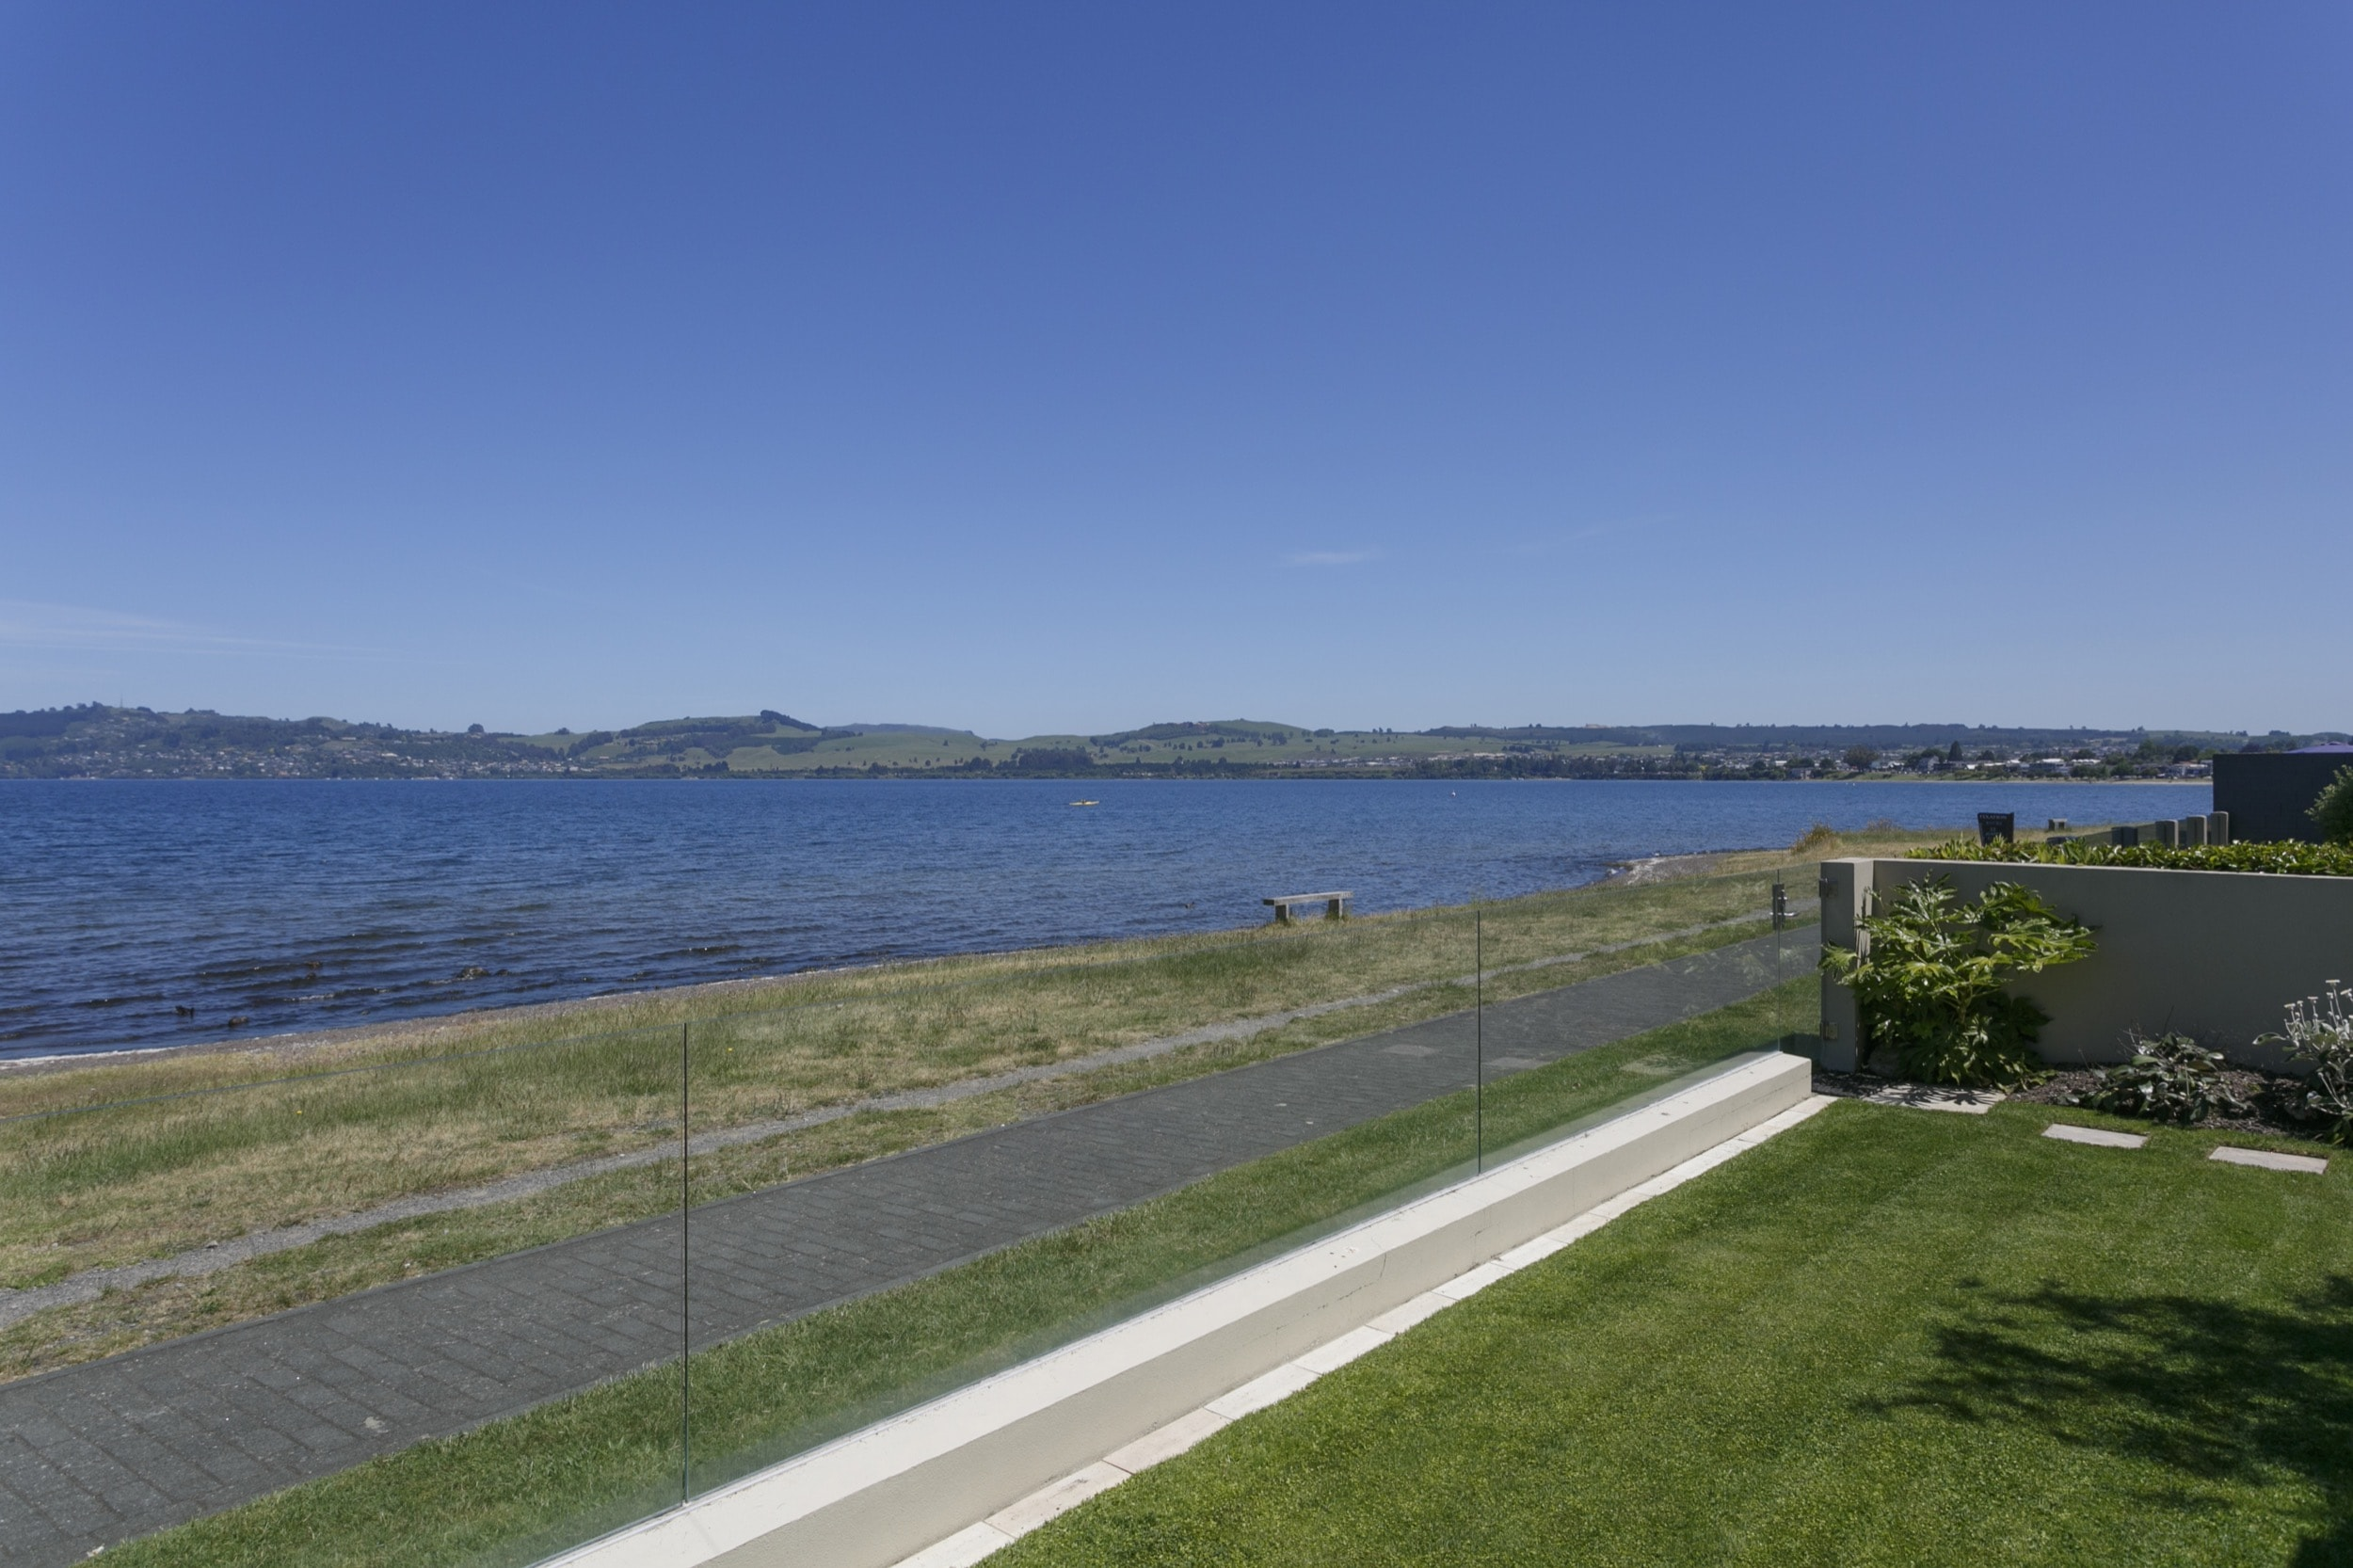 Ground floor two bedroom apartment view of Lake Taupo towards town.jpg